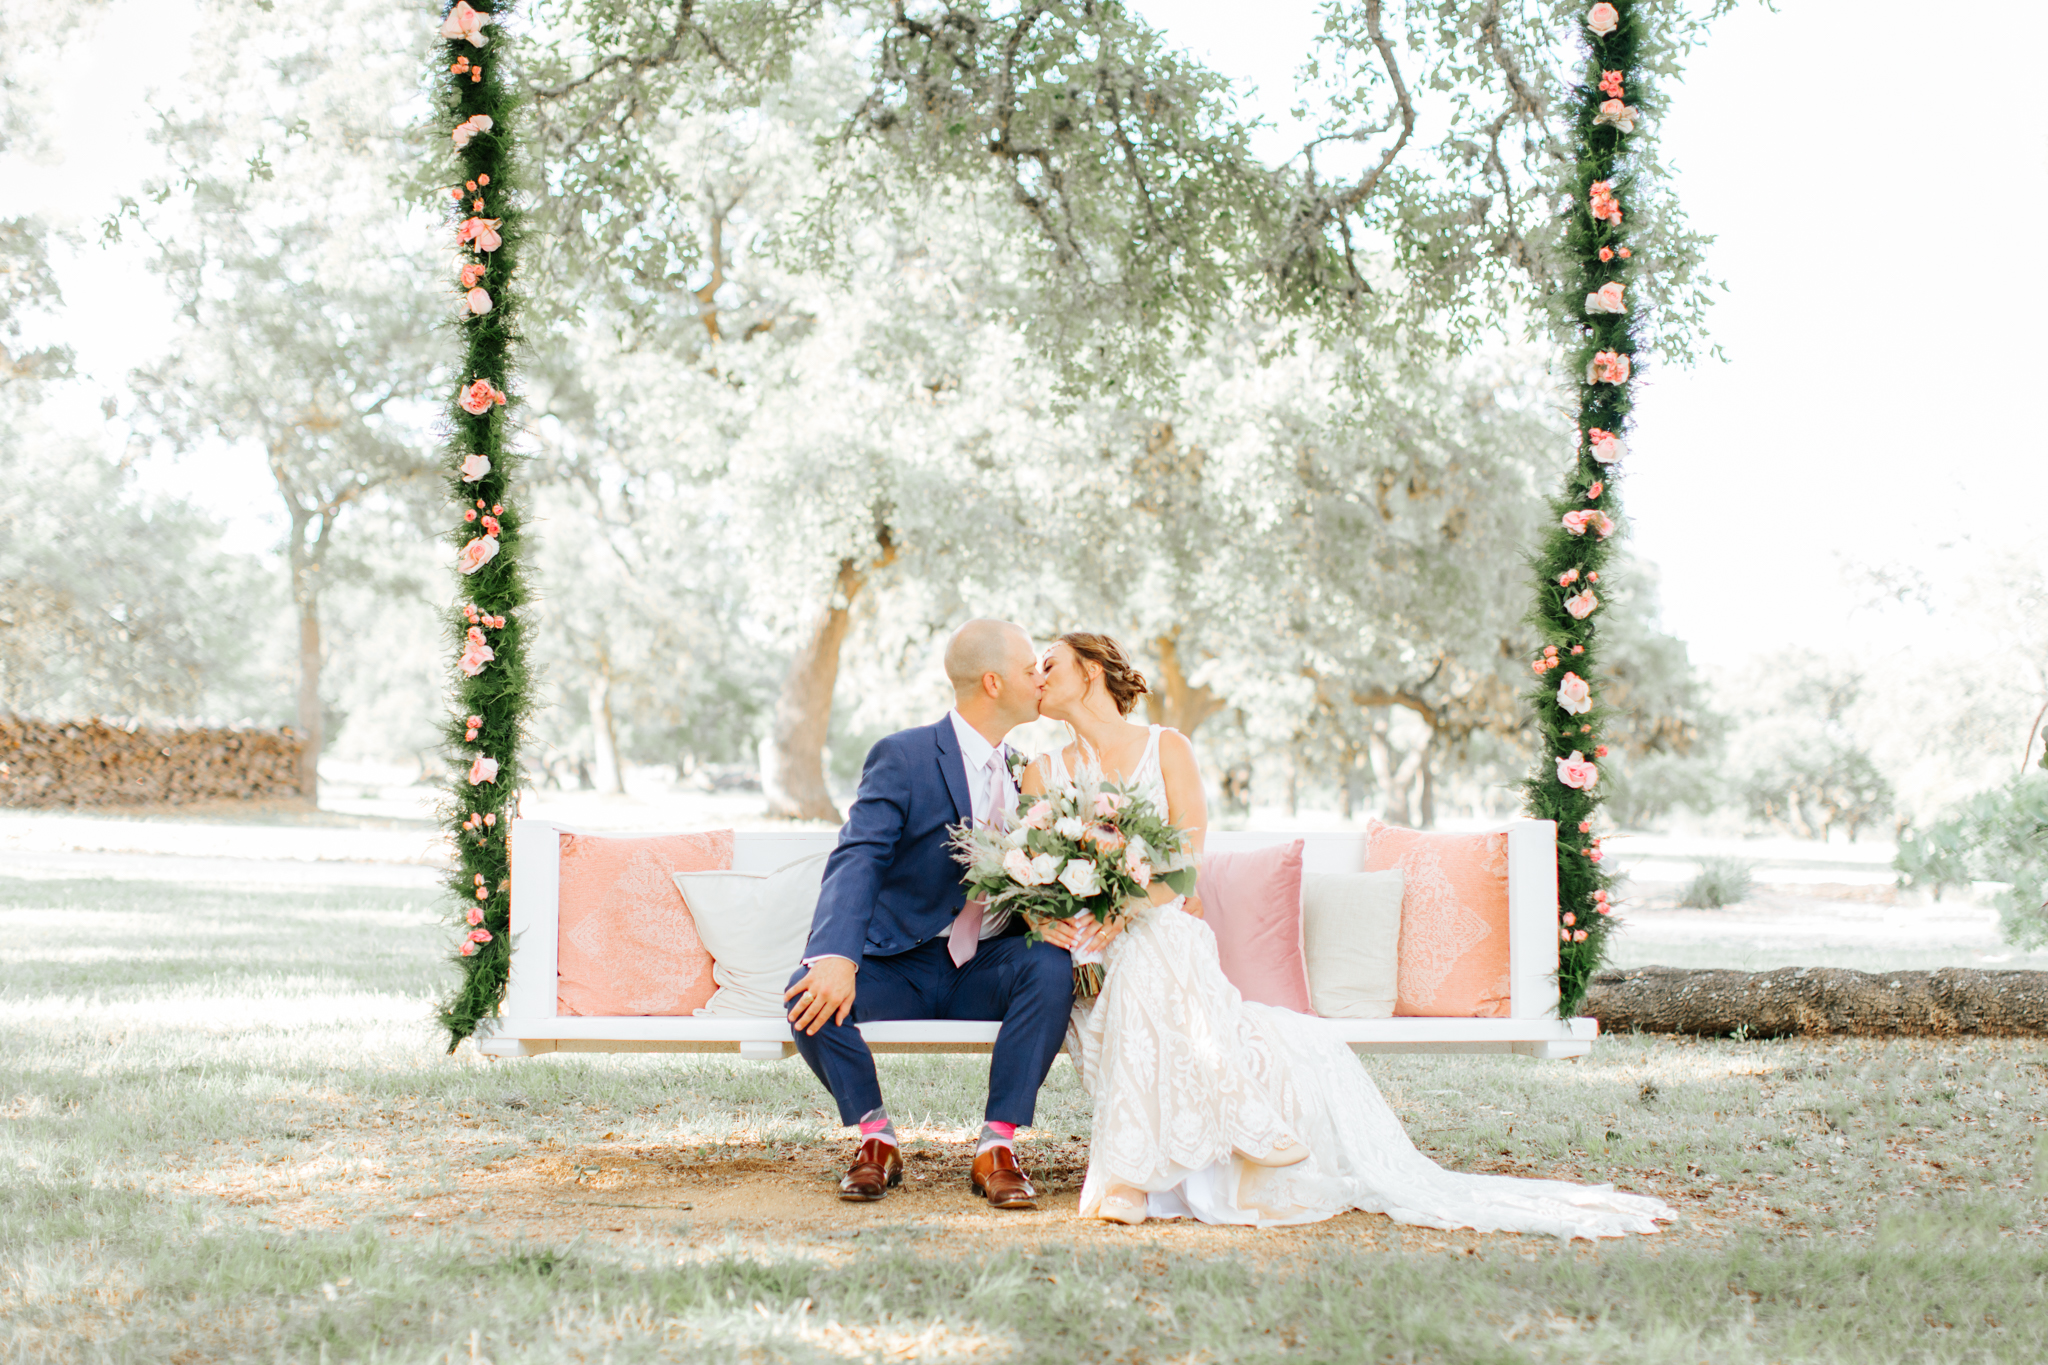 Boerne Wedding Venue | The Oaks